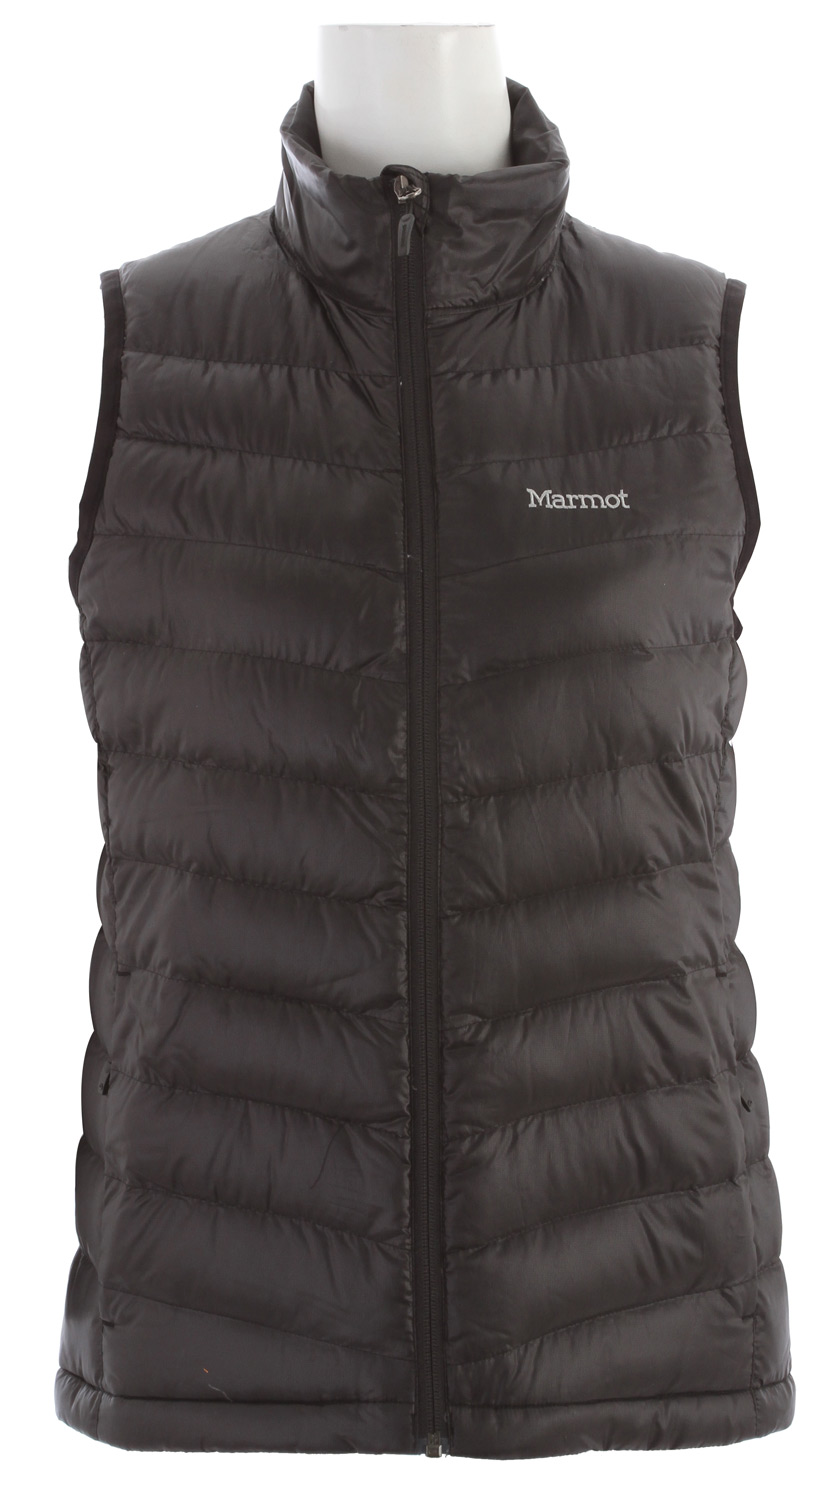 Fact: When your core is warm, so are you. This hardwearing, versatile vest delivers a strong shot of warmth right where it counts. 800 fill goose down is nature's finest insulator, and a quilted pattern gives delicate appeal to the water-resistant face fabric. Inside, you'll find a fetching embossed lining and a handy elastic draw cord hem.Key Features of the Marmot Jena Vest: Ultralight Down-proof Fabric 800 Fill Power Goose Down Zippered Hand Pockets Elastic Draw Cord Hem Packs into Pocket - $105.95